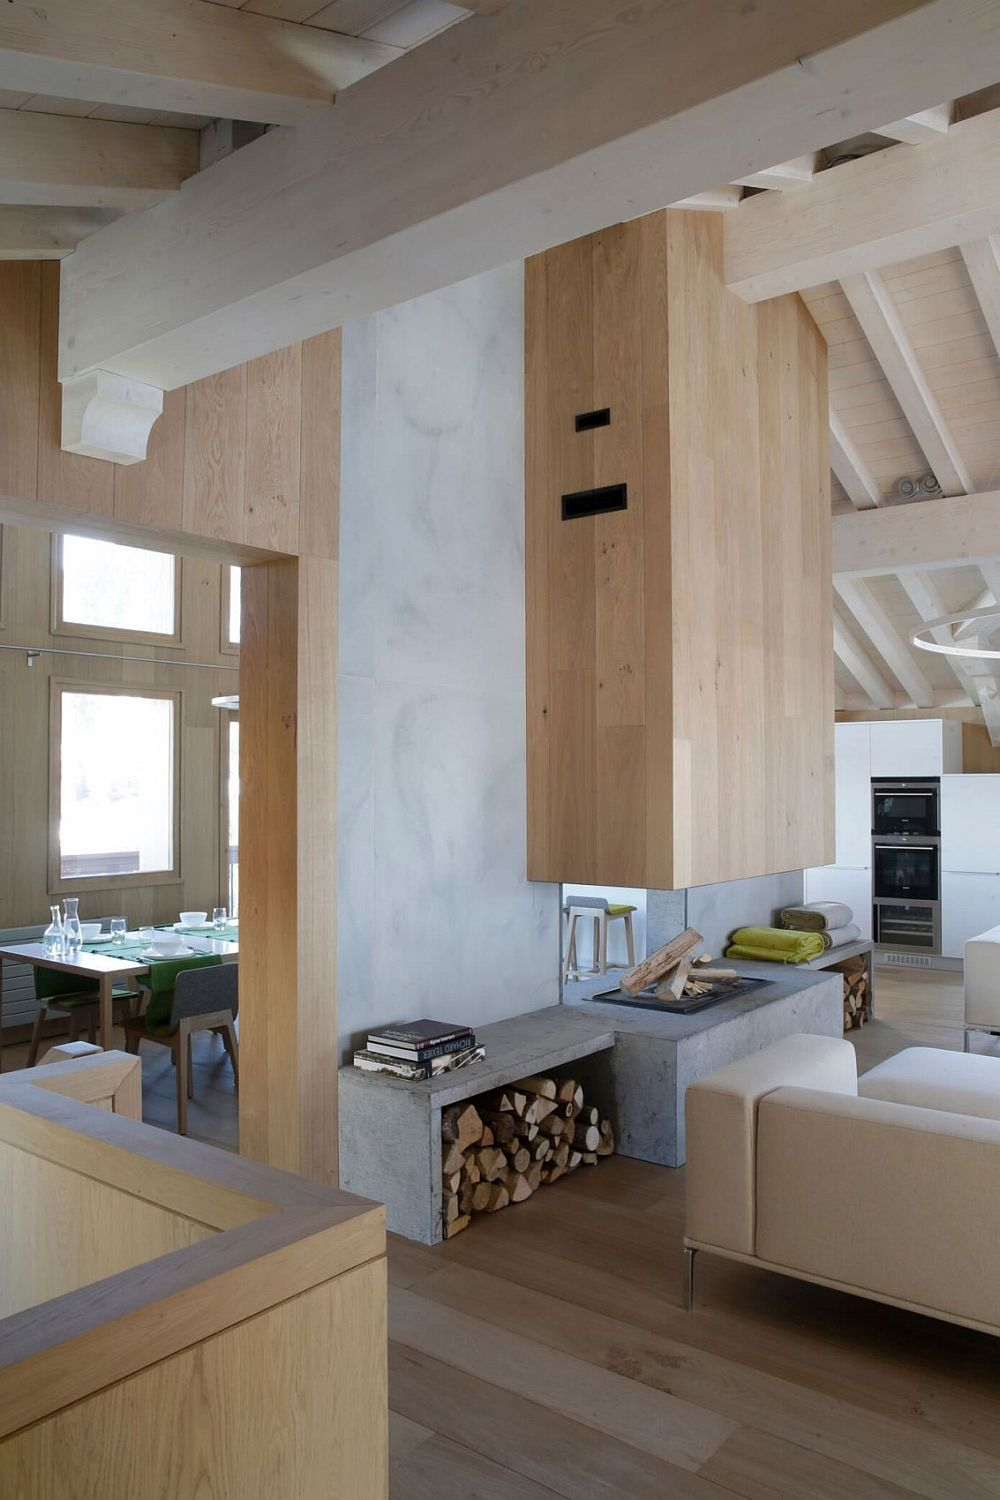 Exposed concrete and wood shape the simple and minimal interior